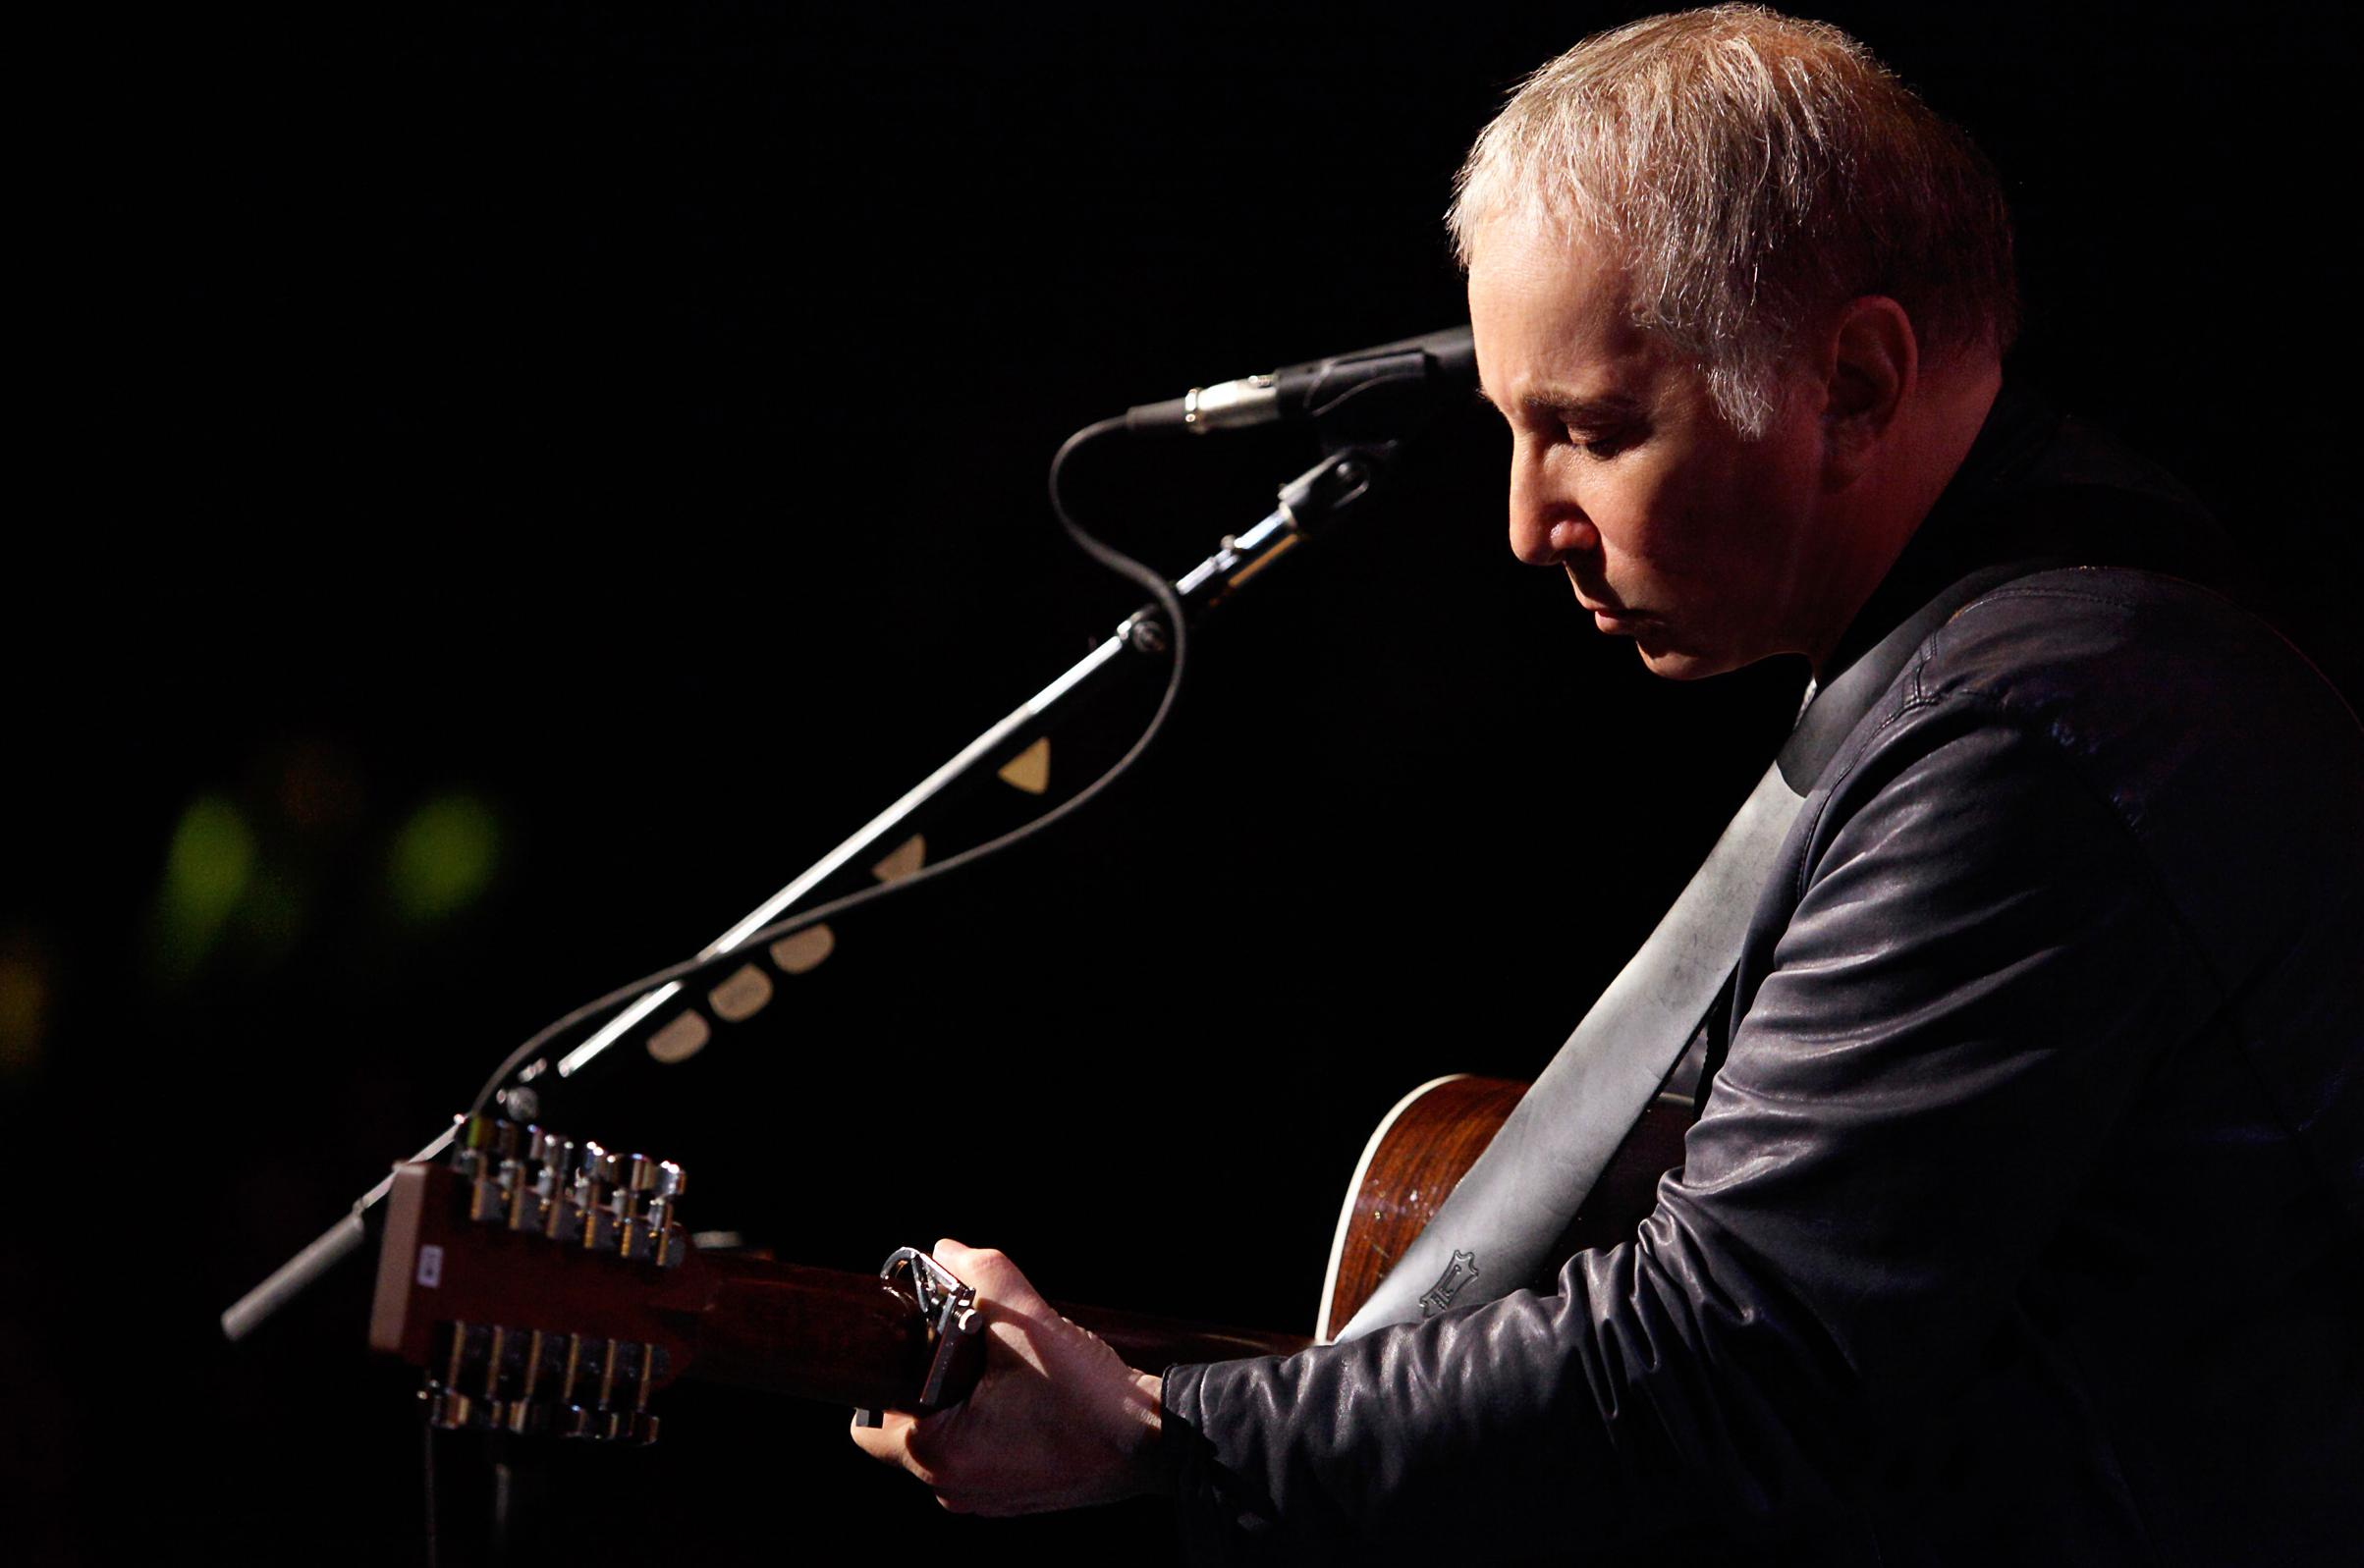 Paul Simons Solo Career In 12 Songs A Concert Playlist The